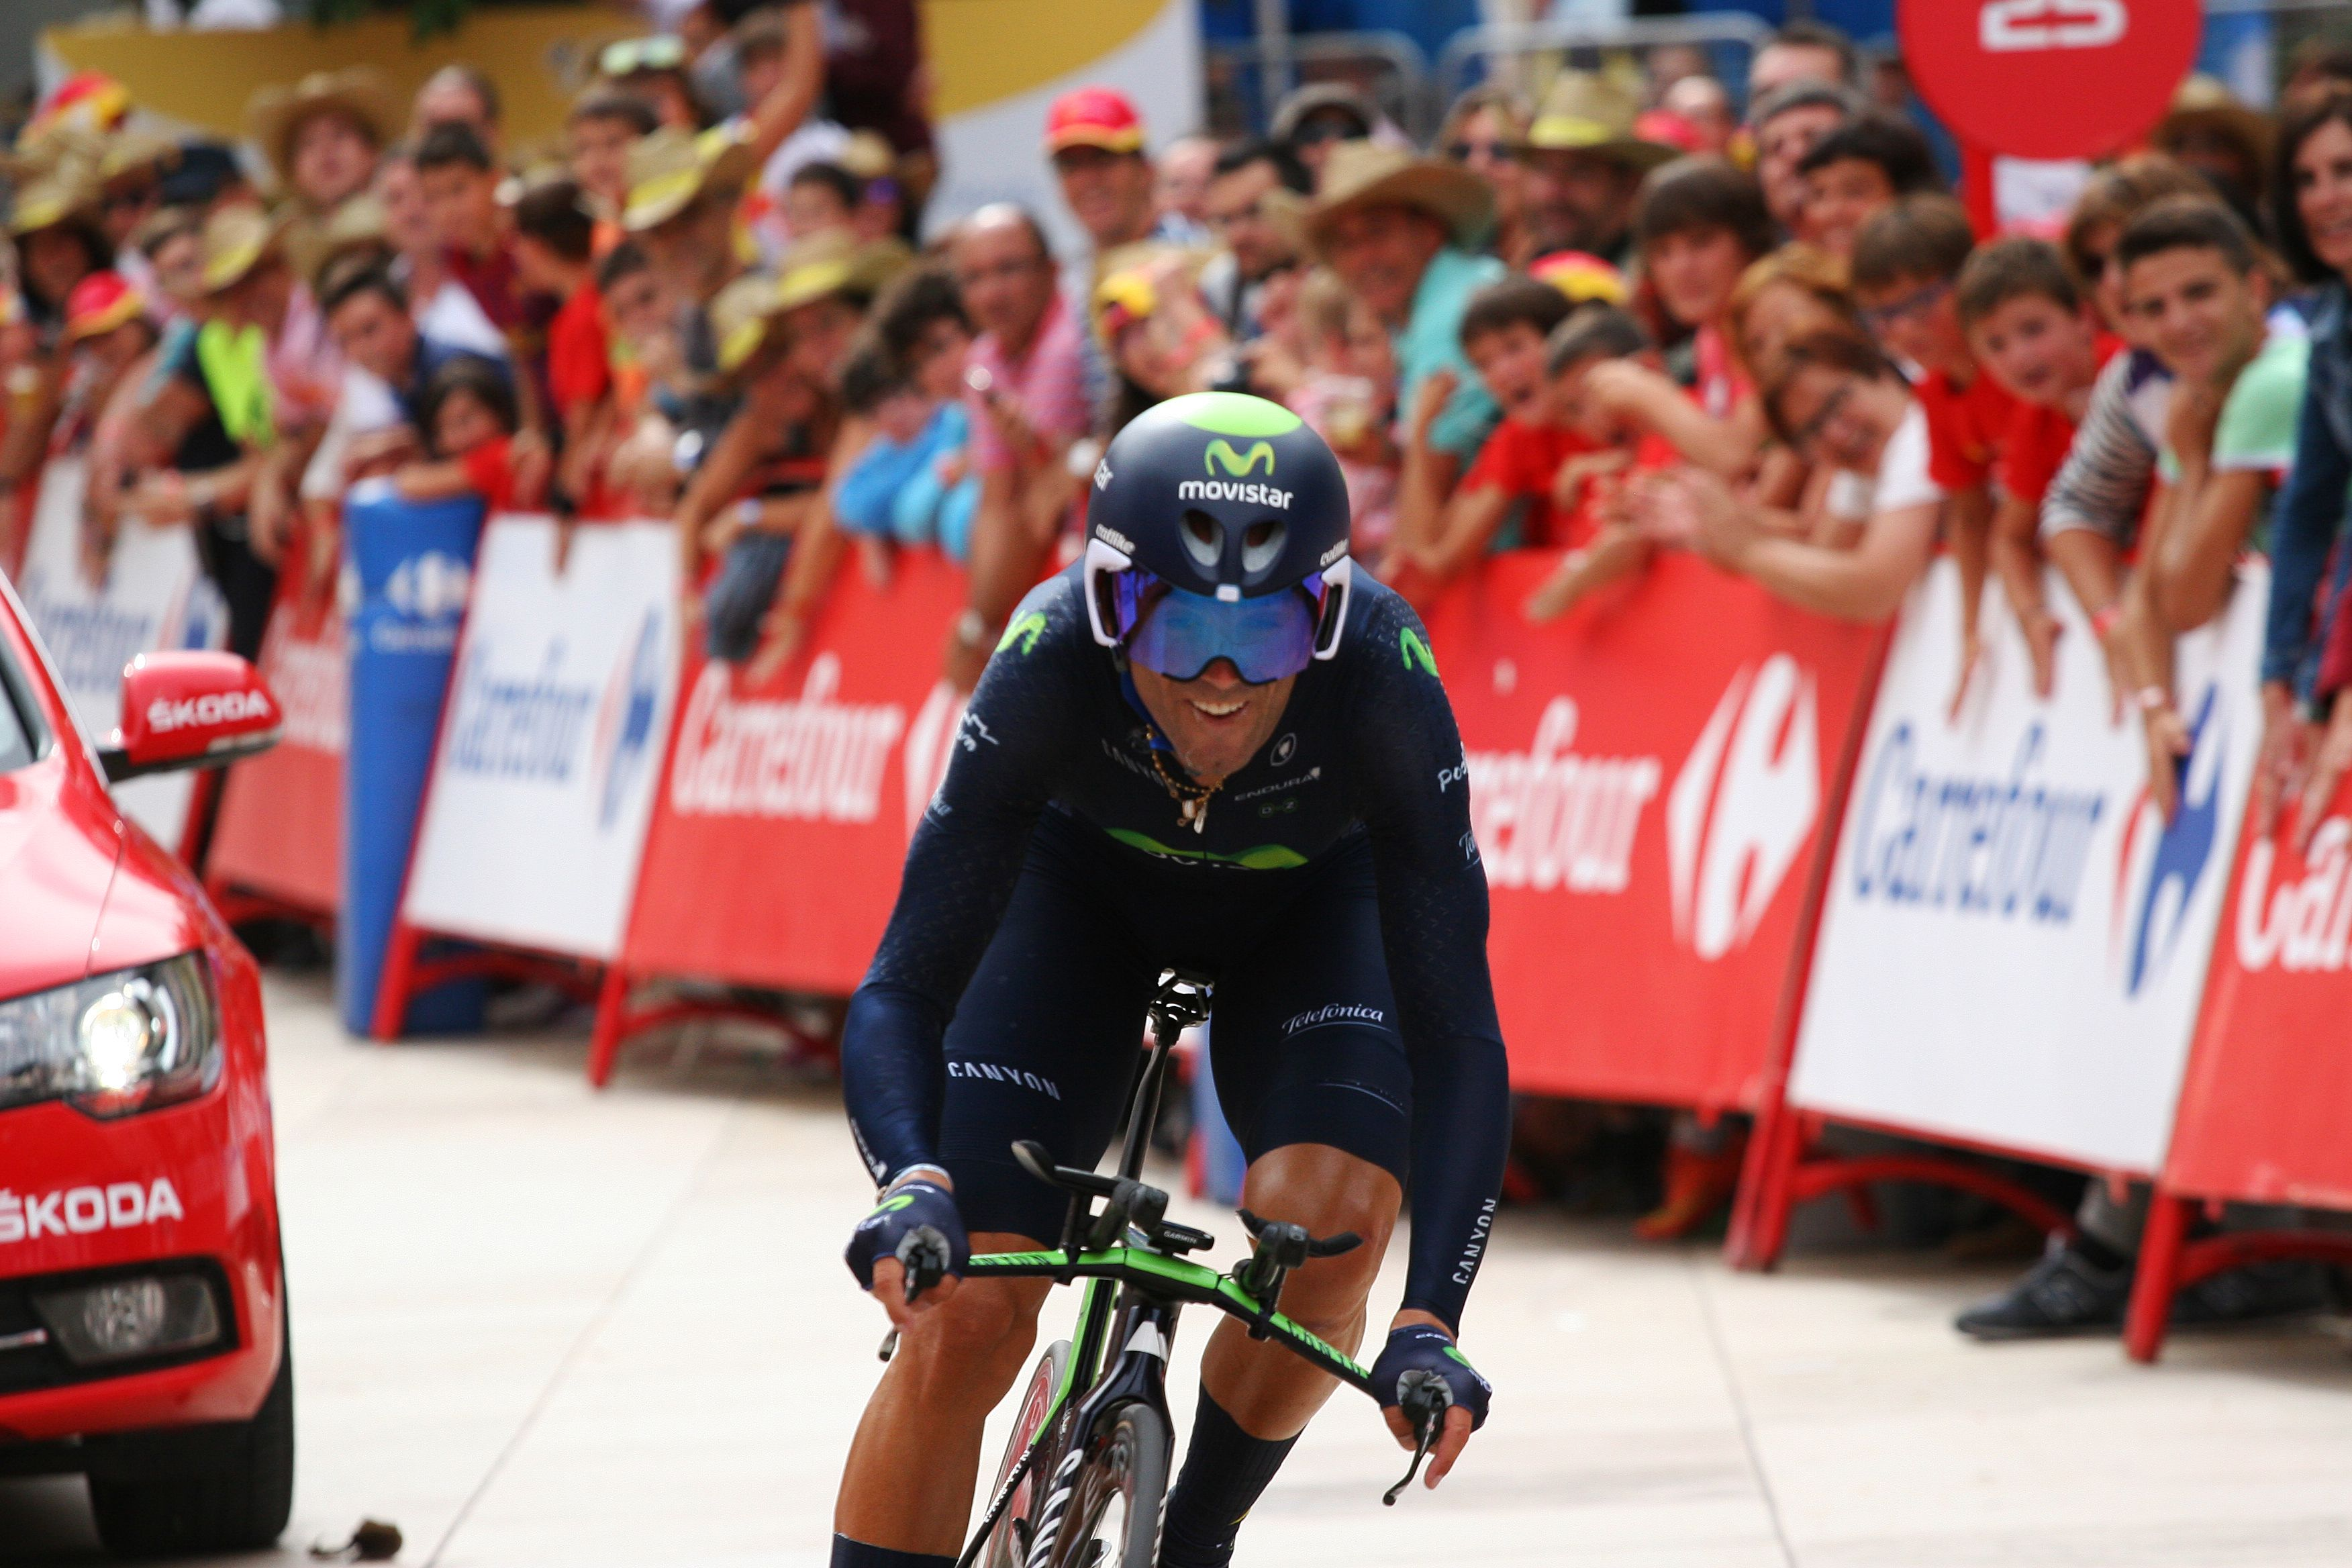 Lavuelta 2015 Burgos Tt At Stage 17 Alejandrovalverde Tries To Win The Jersey Cyclingcountry Road Bike Tours Www Cyclingcountry Com Cyclingspain Espana